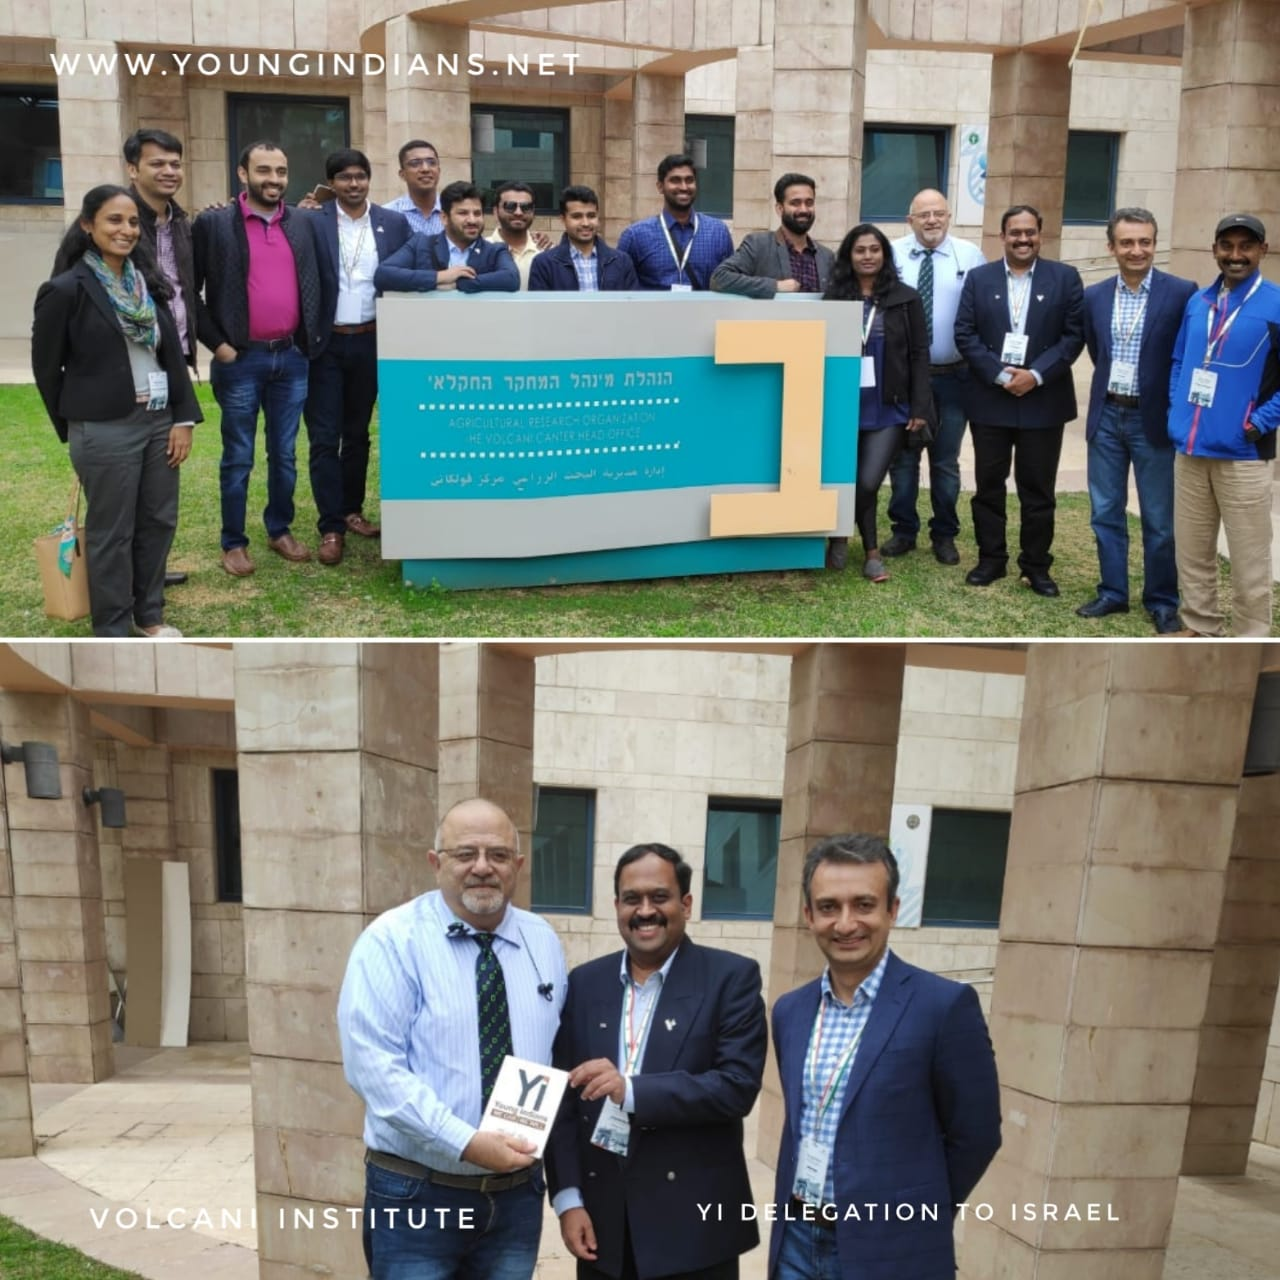 Yi Delegation to Israel 2019 - Visit to Volcani institute.